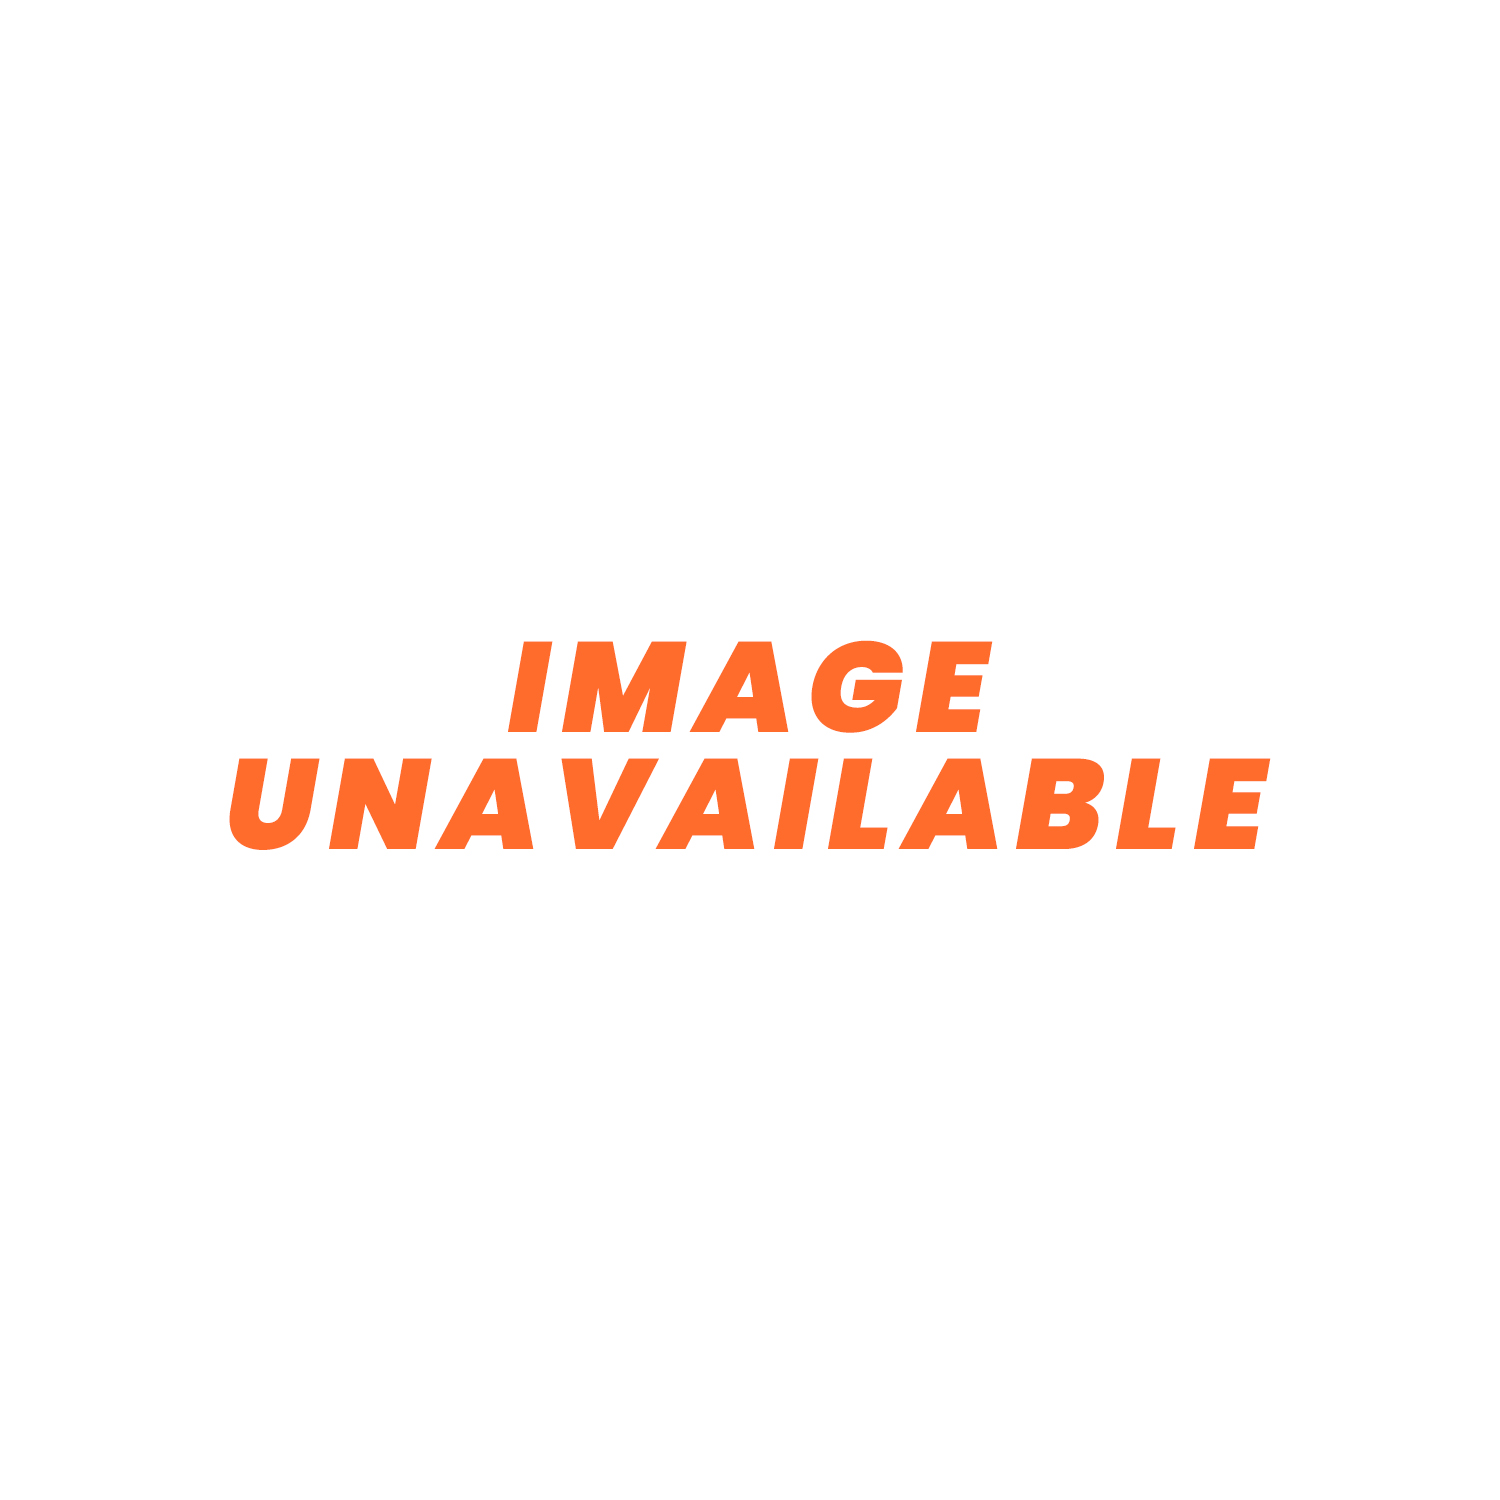 2.4kw Cubby Heater - 24v